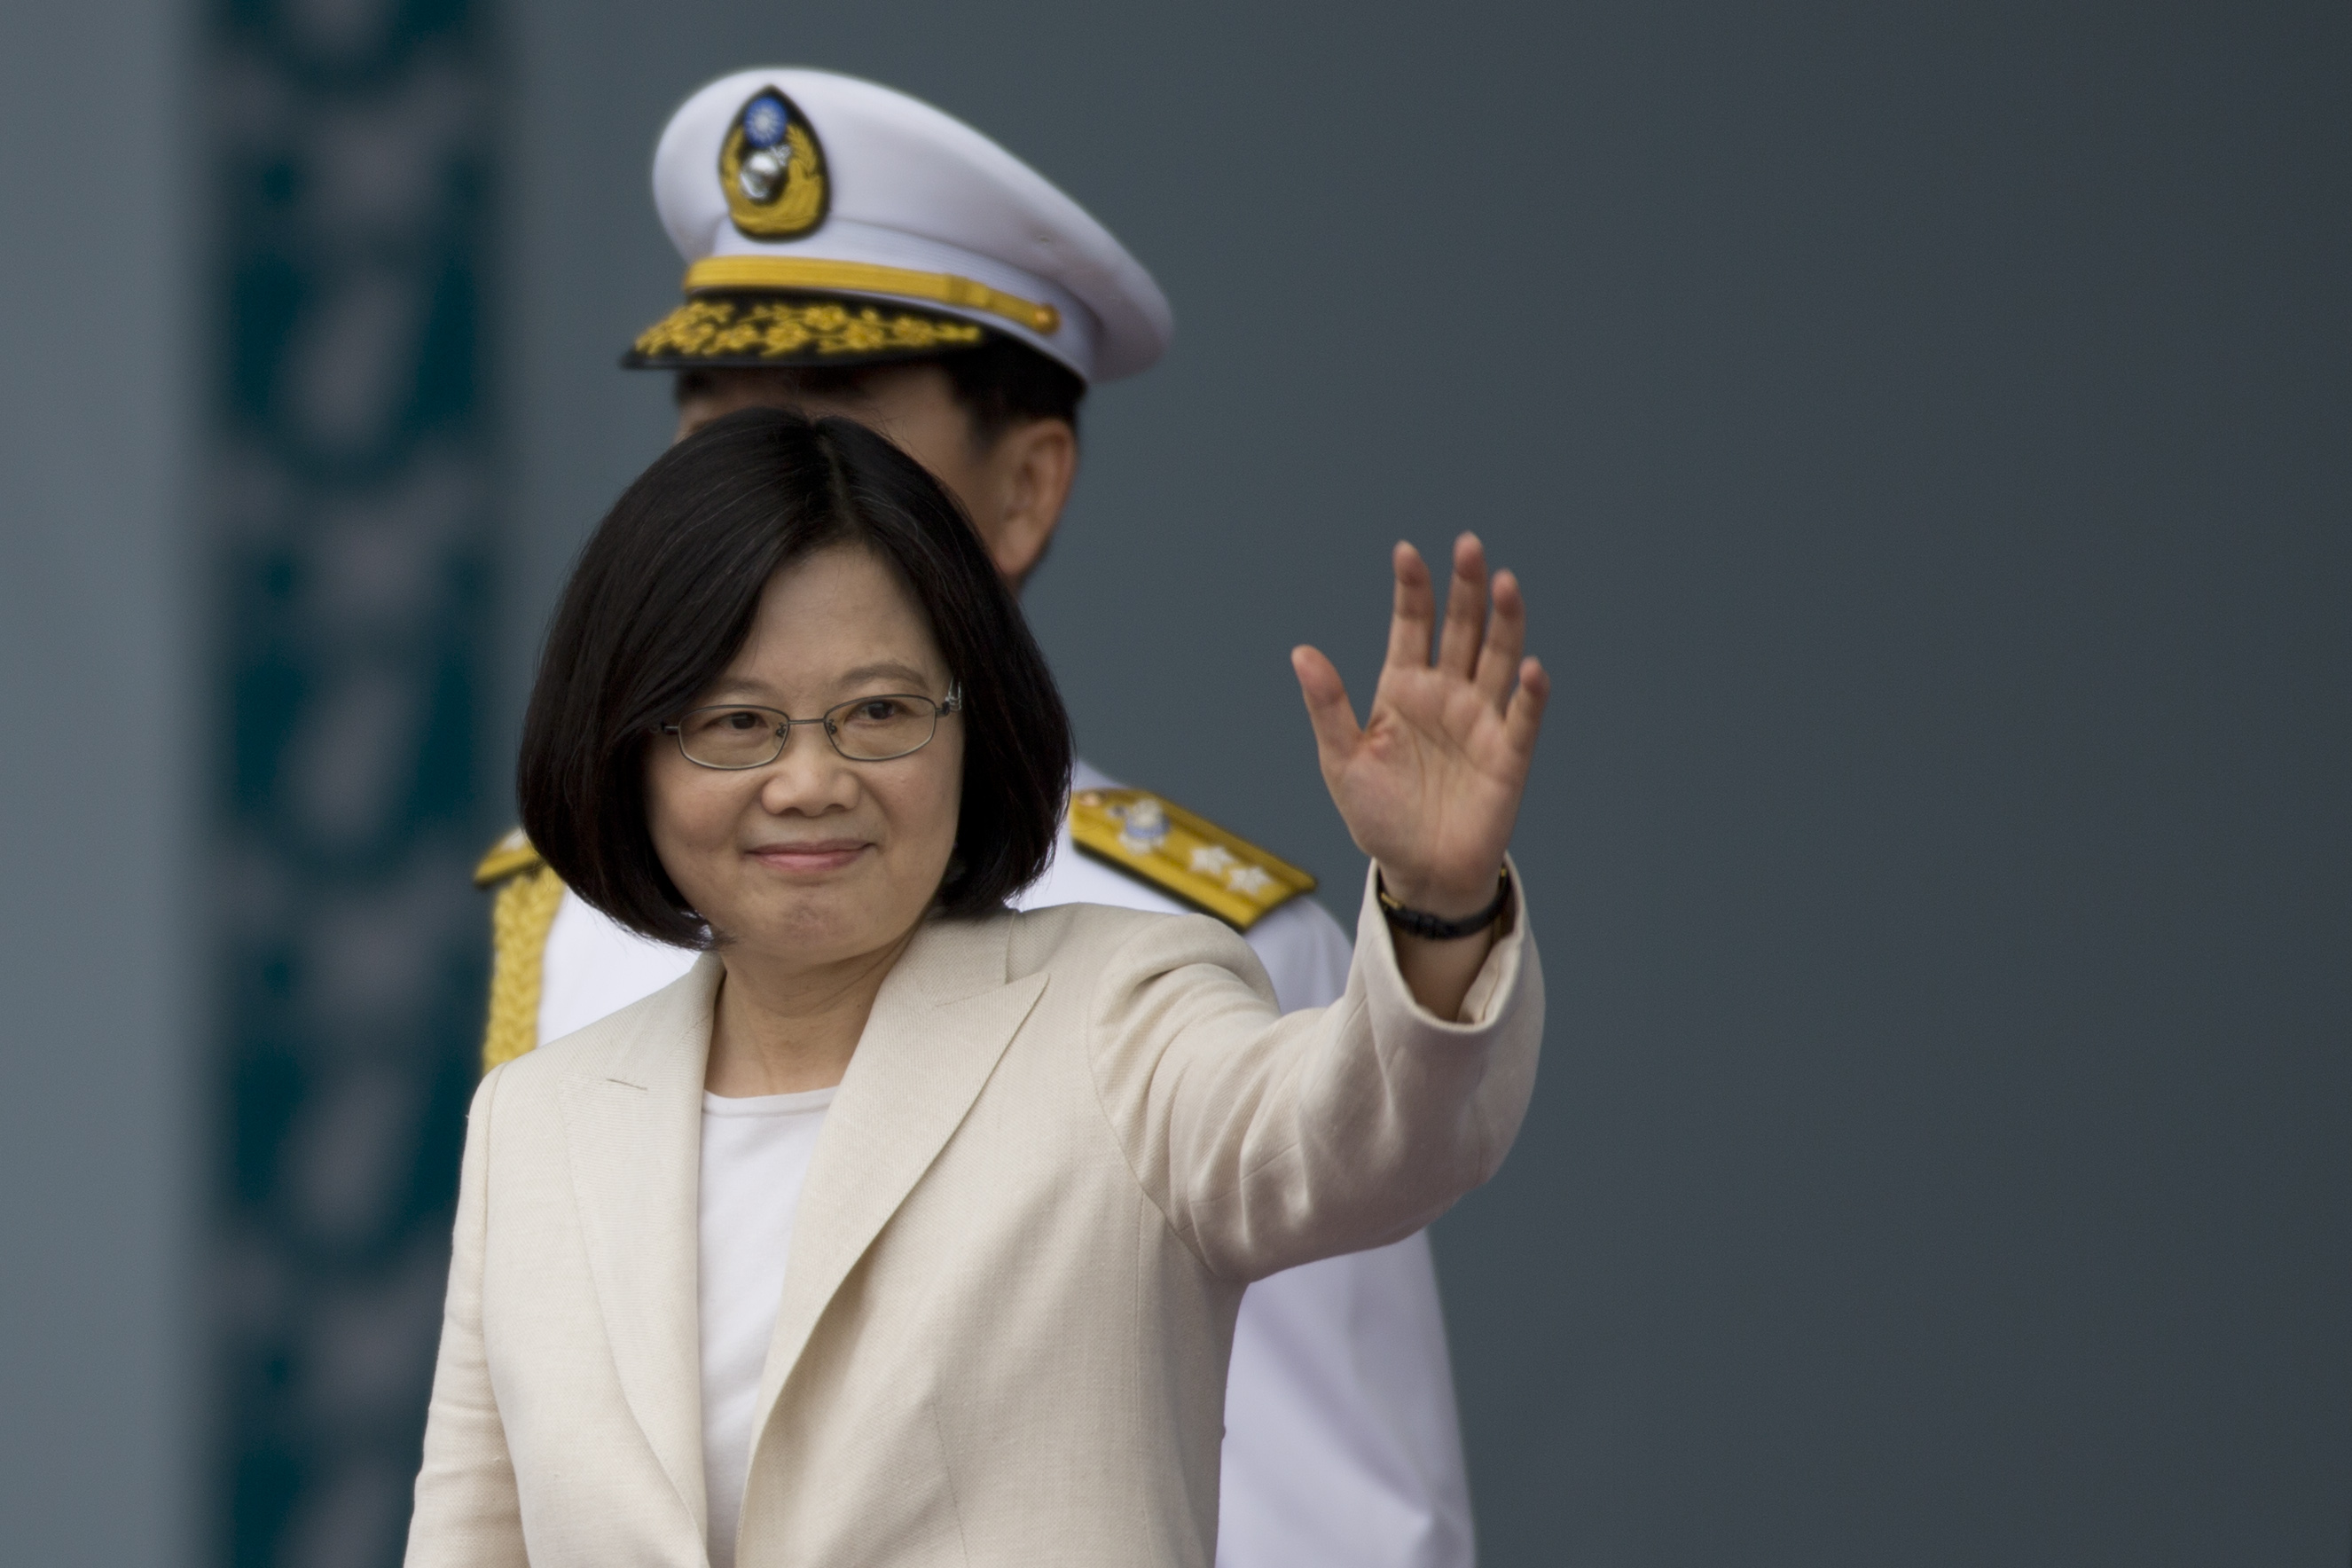 Taiwan President Tsai Ing-wen waves to the supporters at the celebration of the 14th presidential inauguration on May 20 in Taipei, Taiwan.